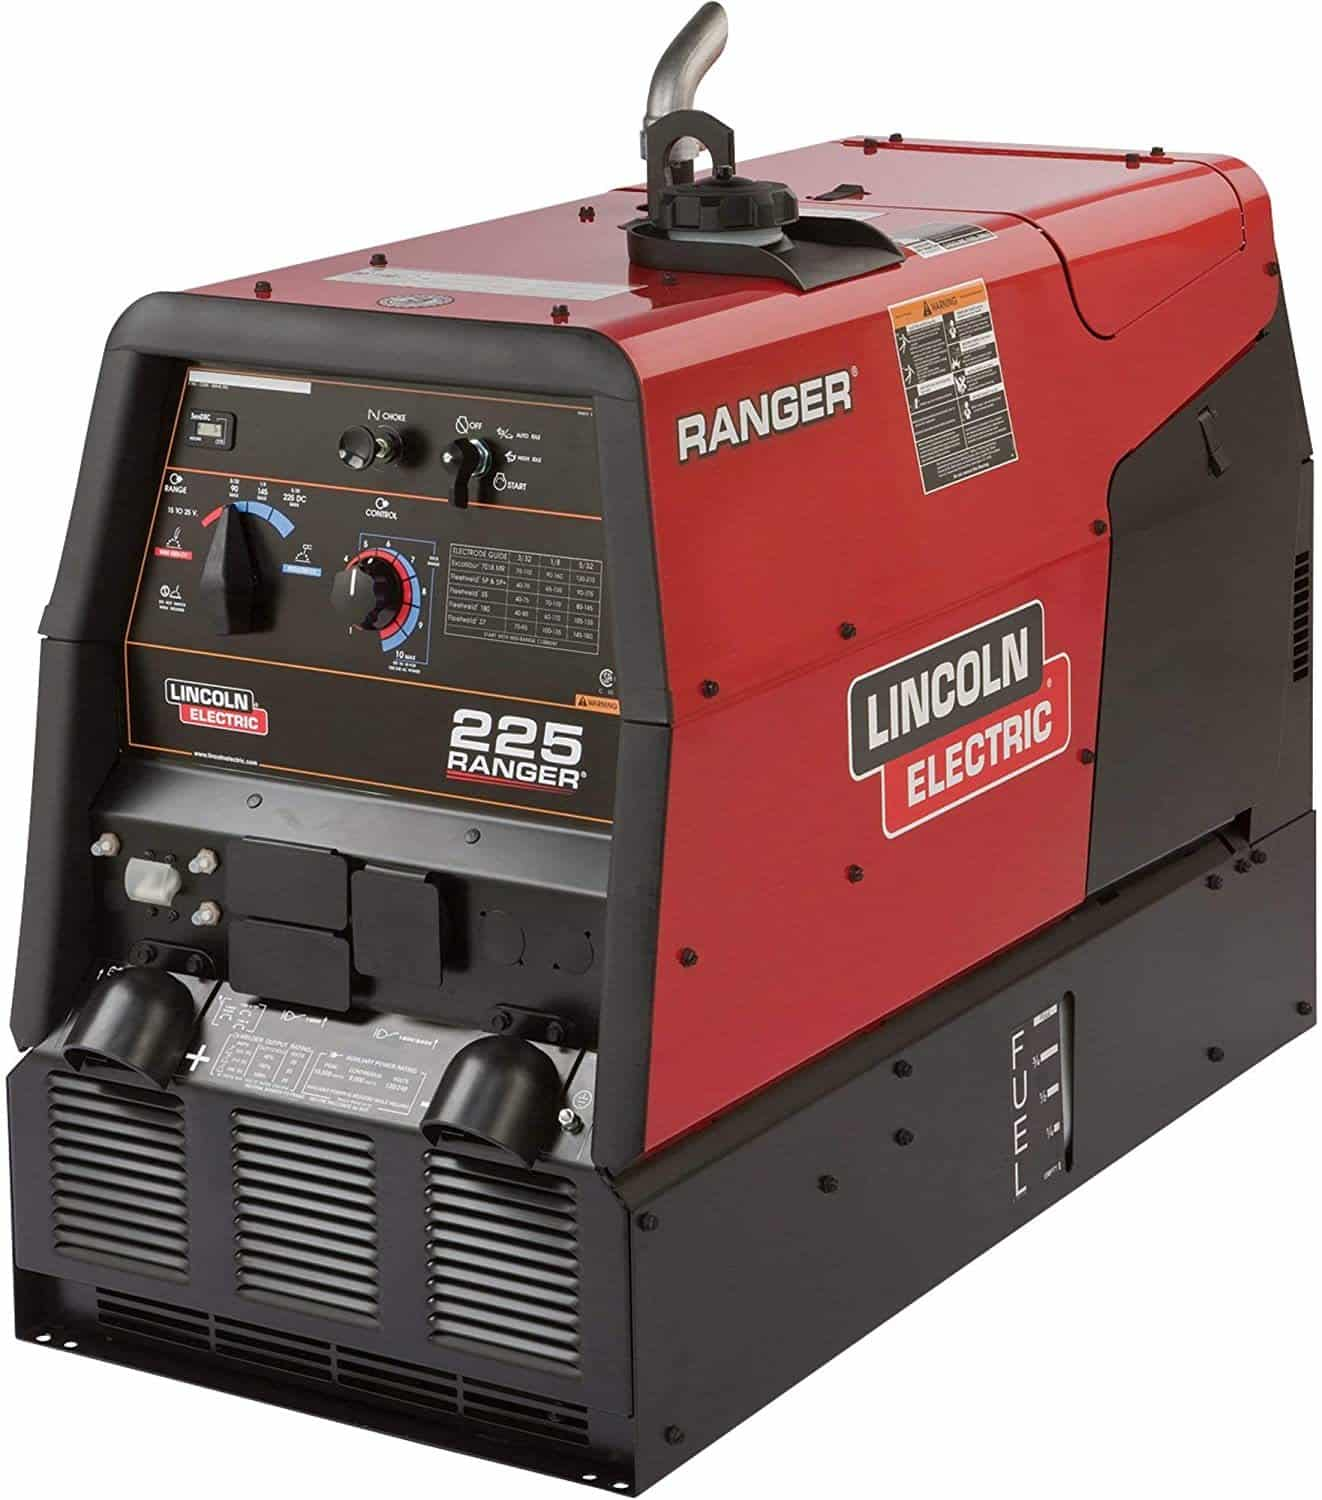 TOMAHAWK 15 HP Engine Driven Portable Generator